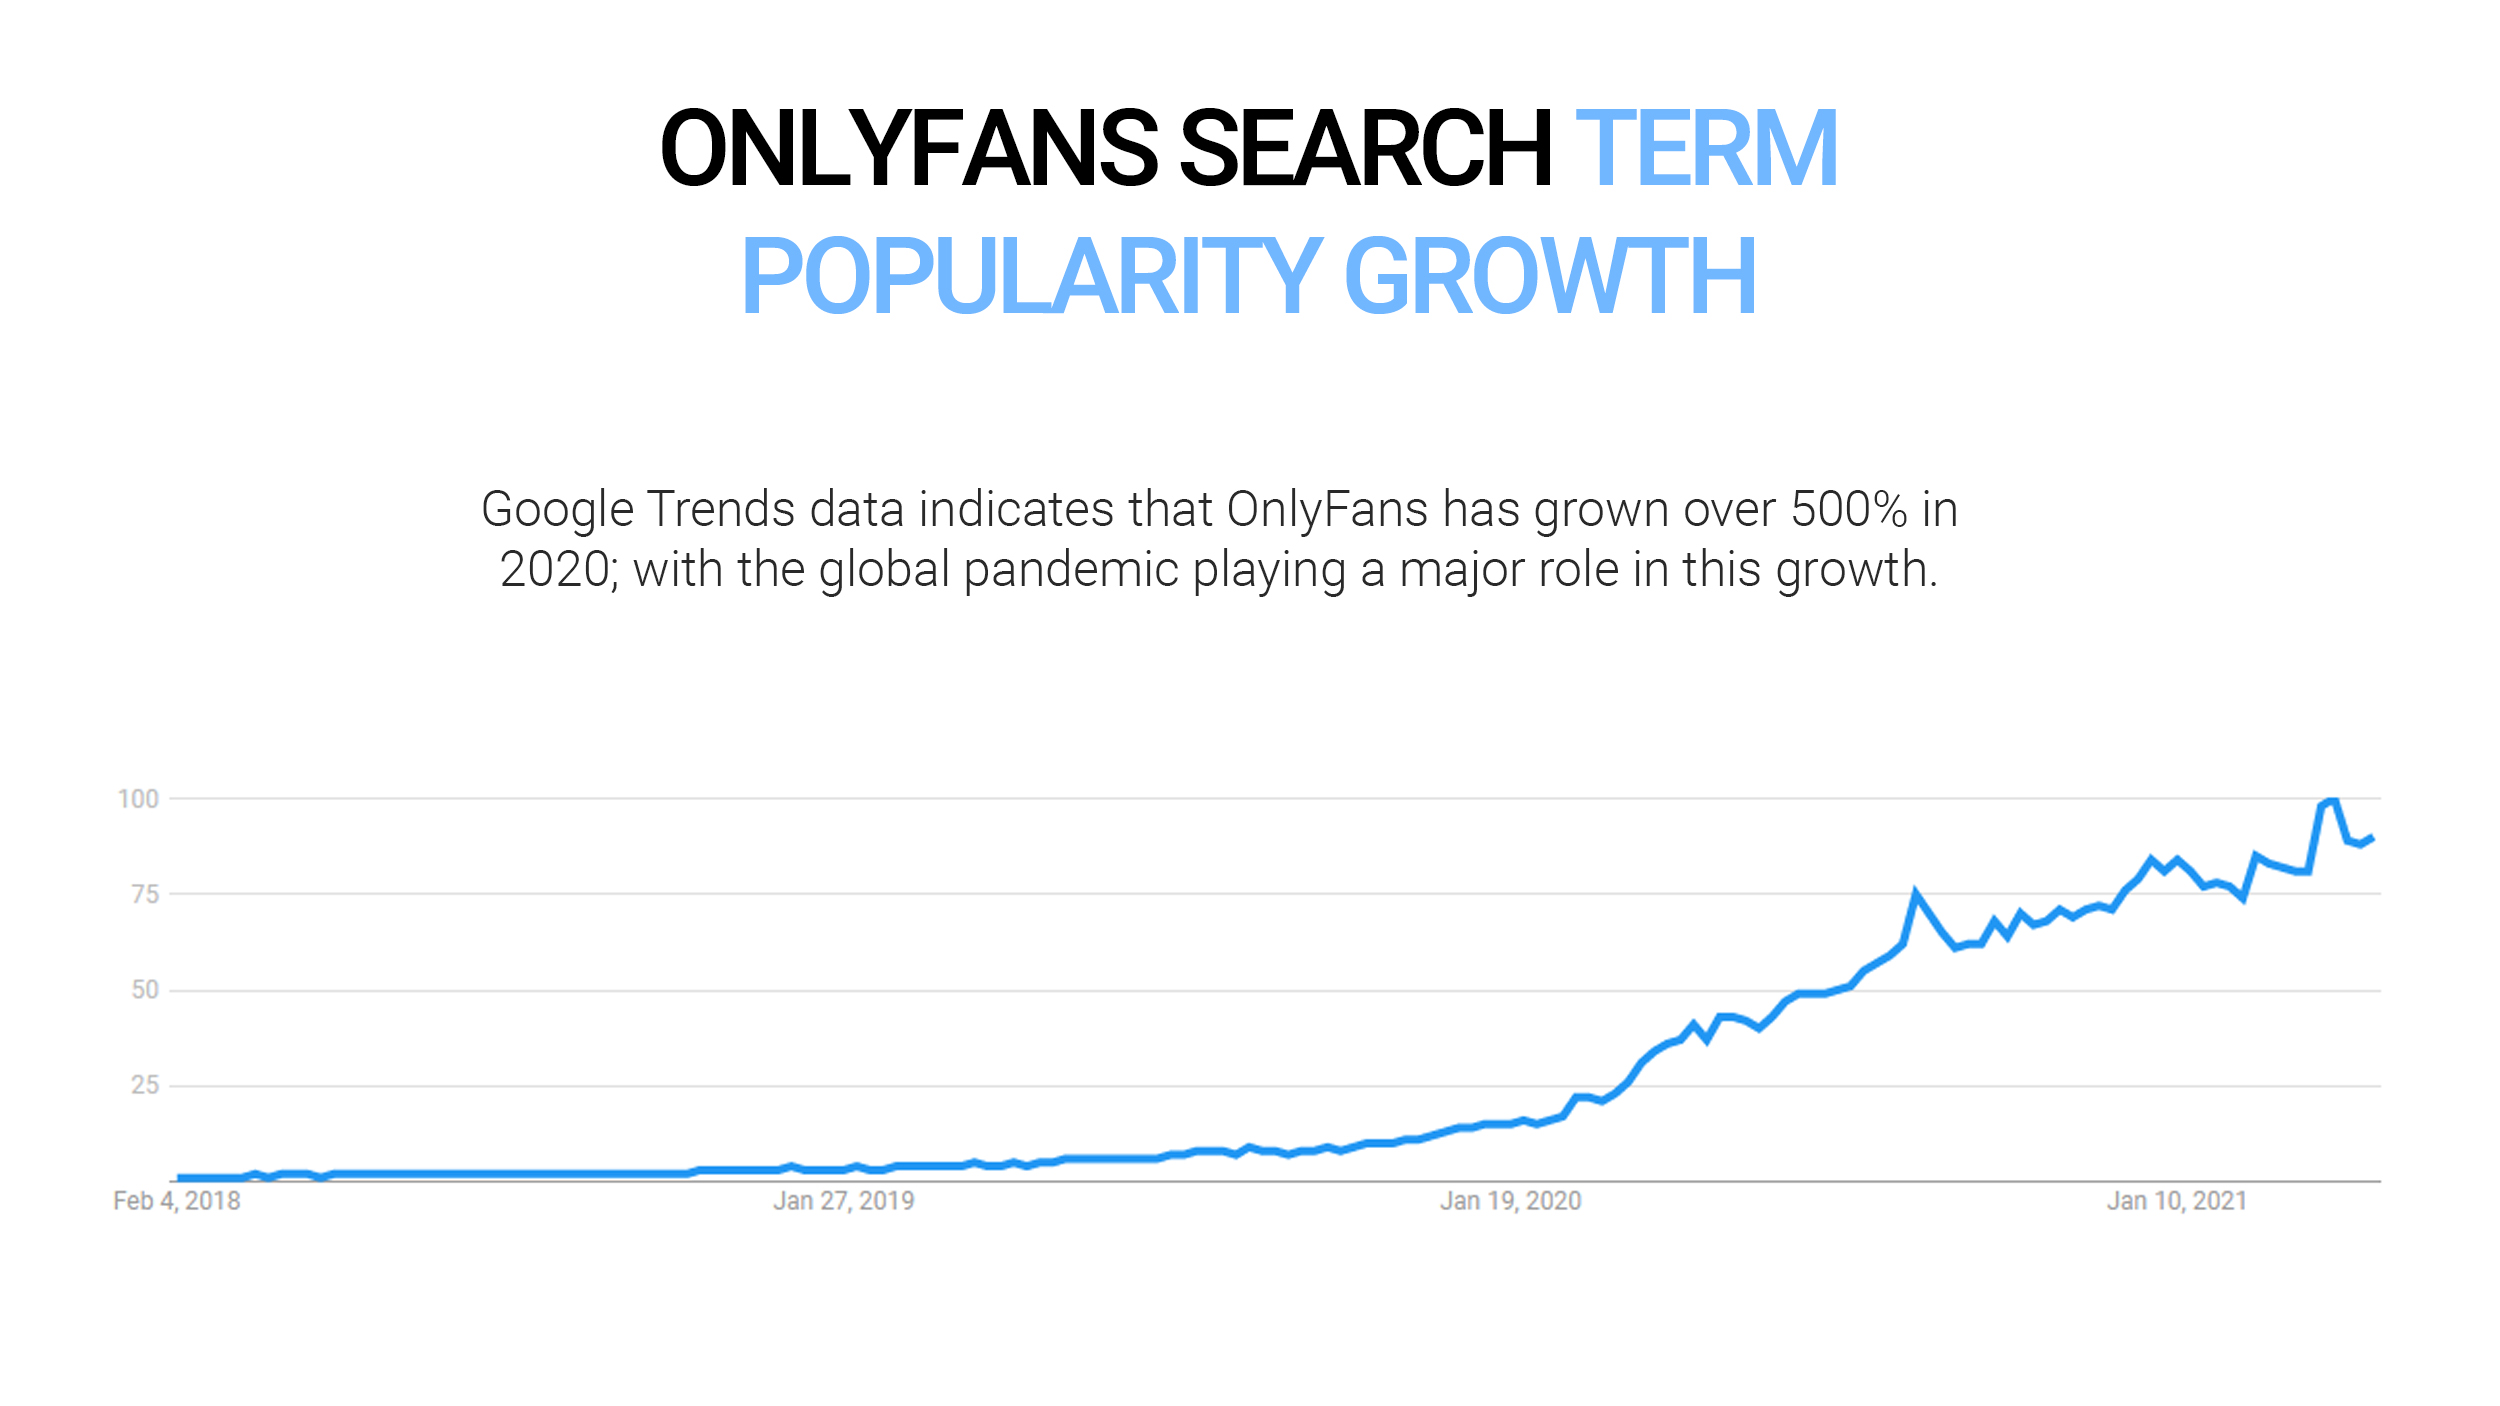 OnlyFans search term popularity growth data from Google Trends